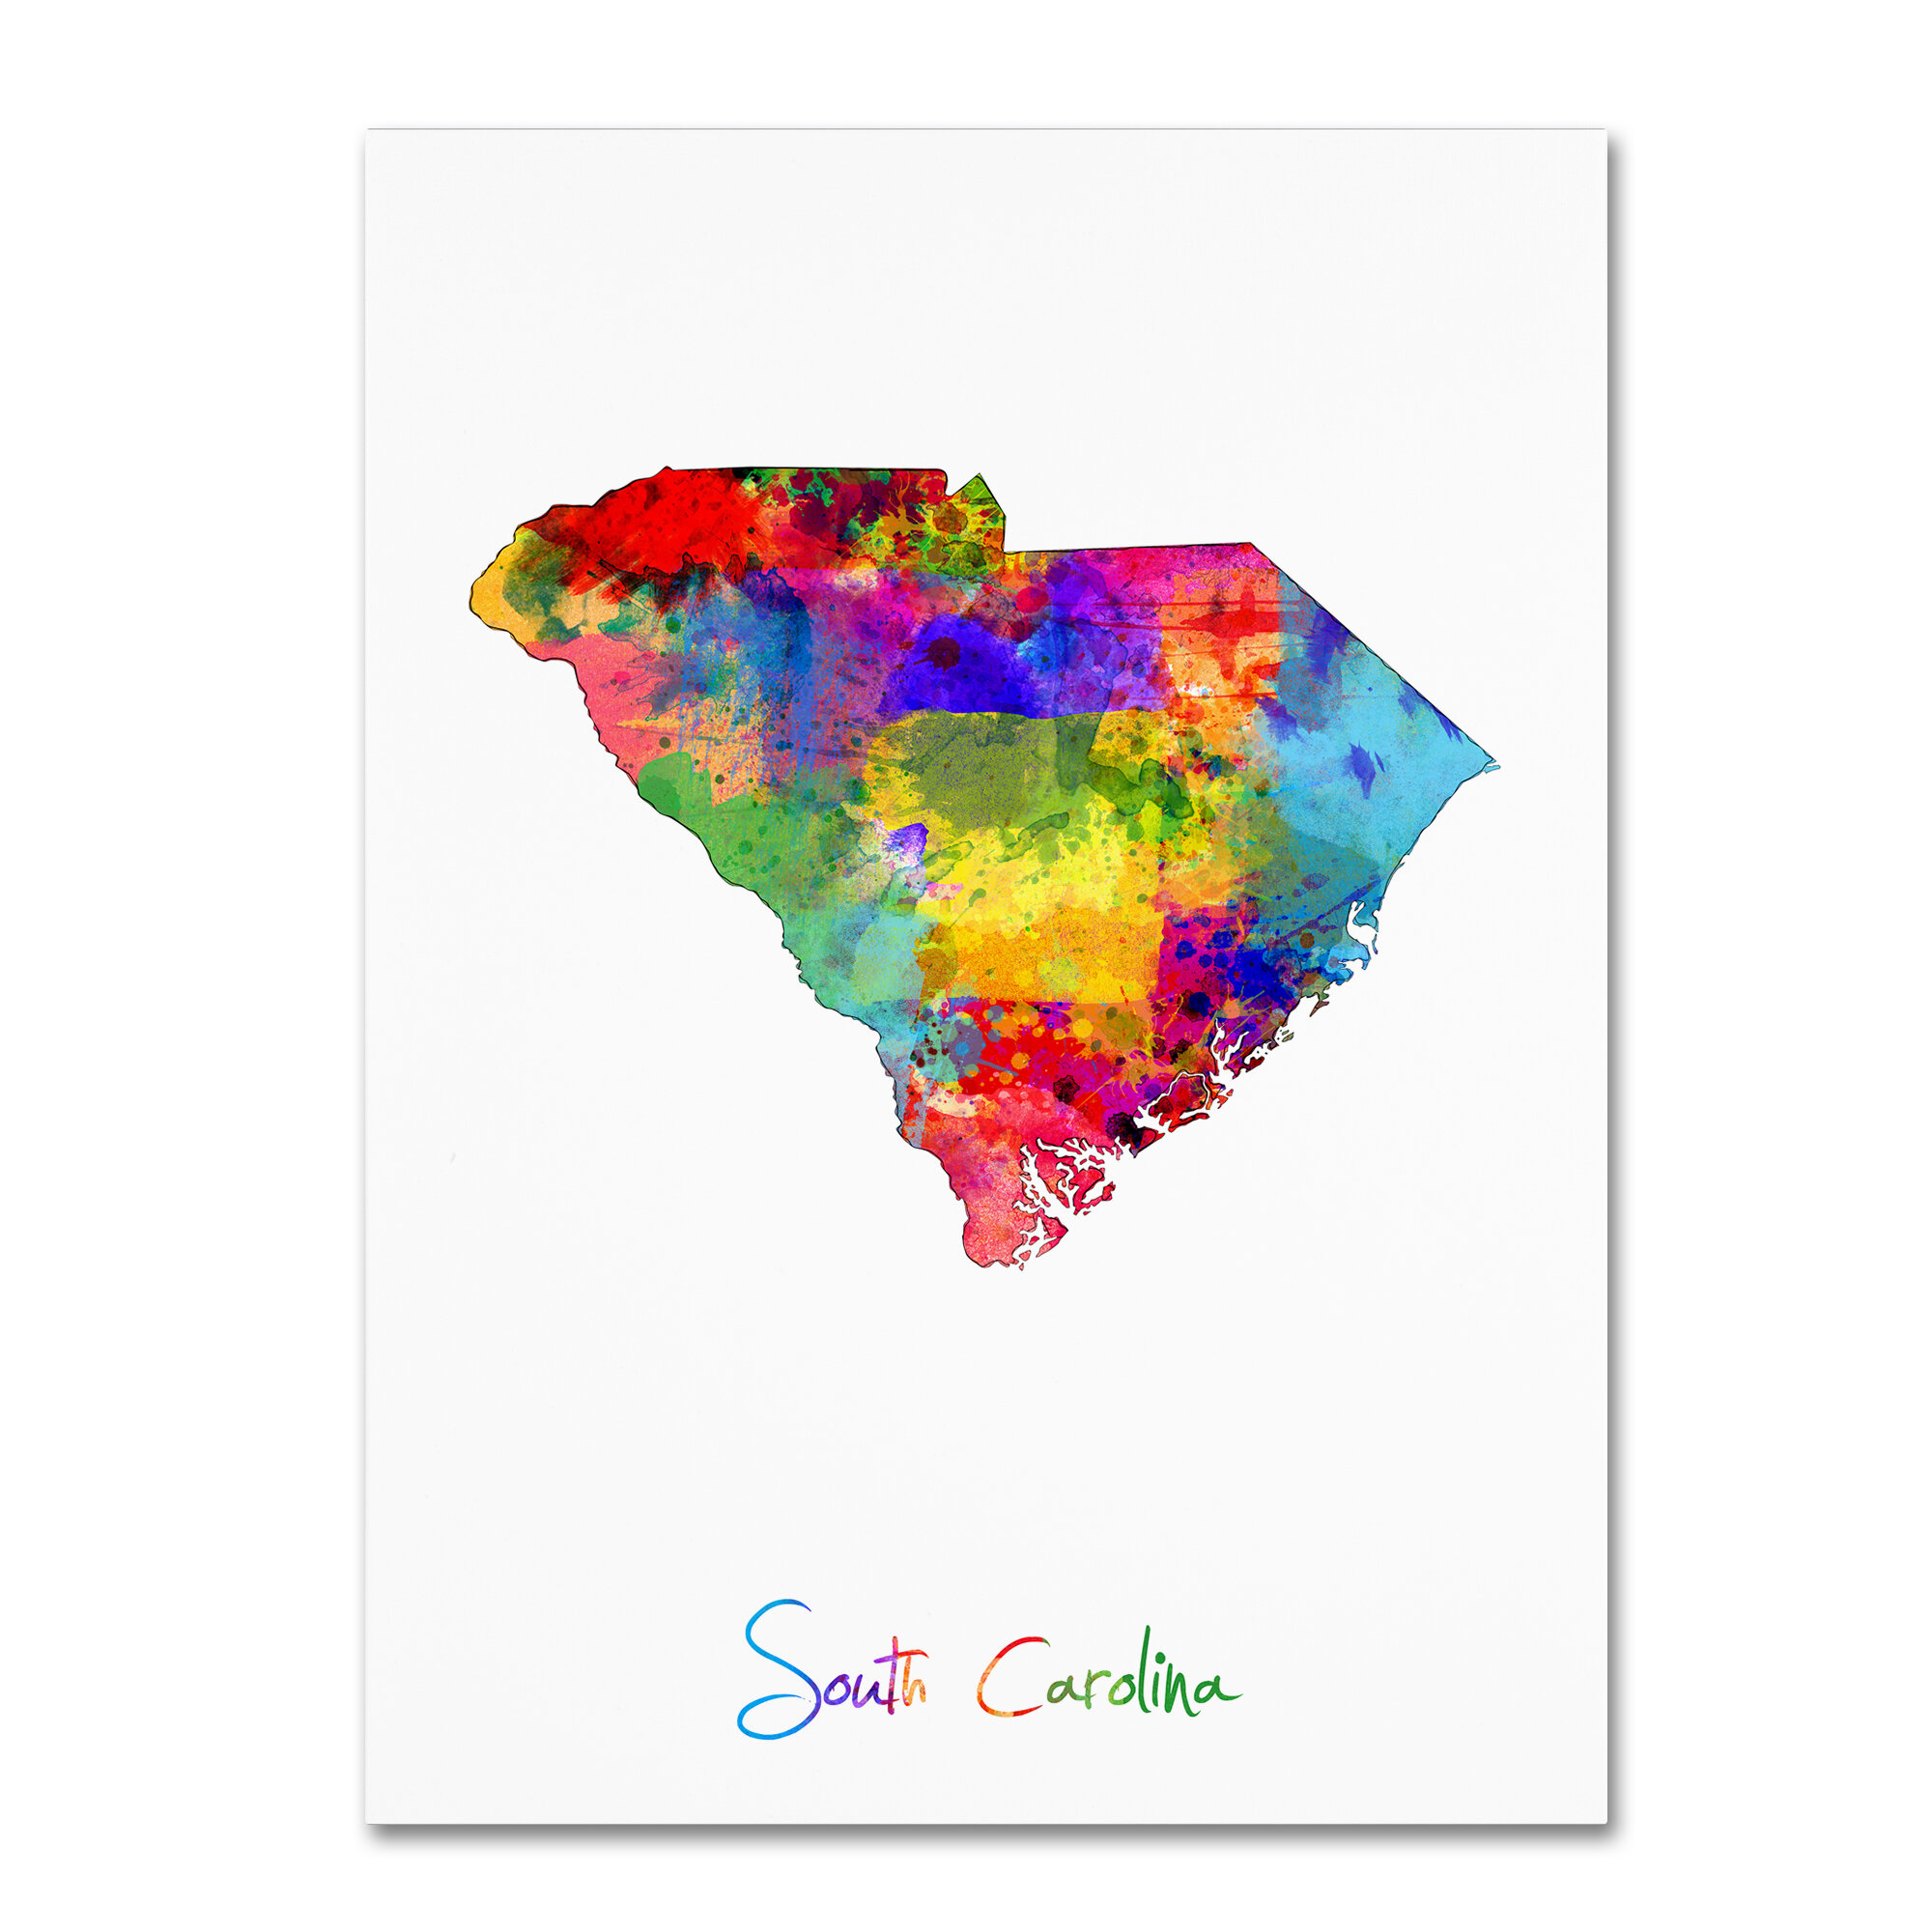 graphic relating to Printable Map of South Carolina titled South Carolina Map Image Artwork Print upon Wrapped Canvas